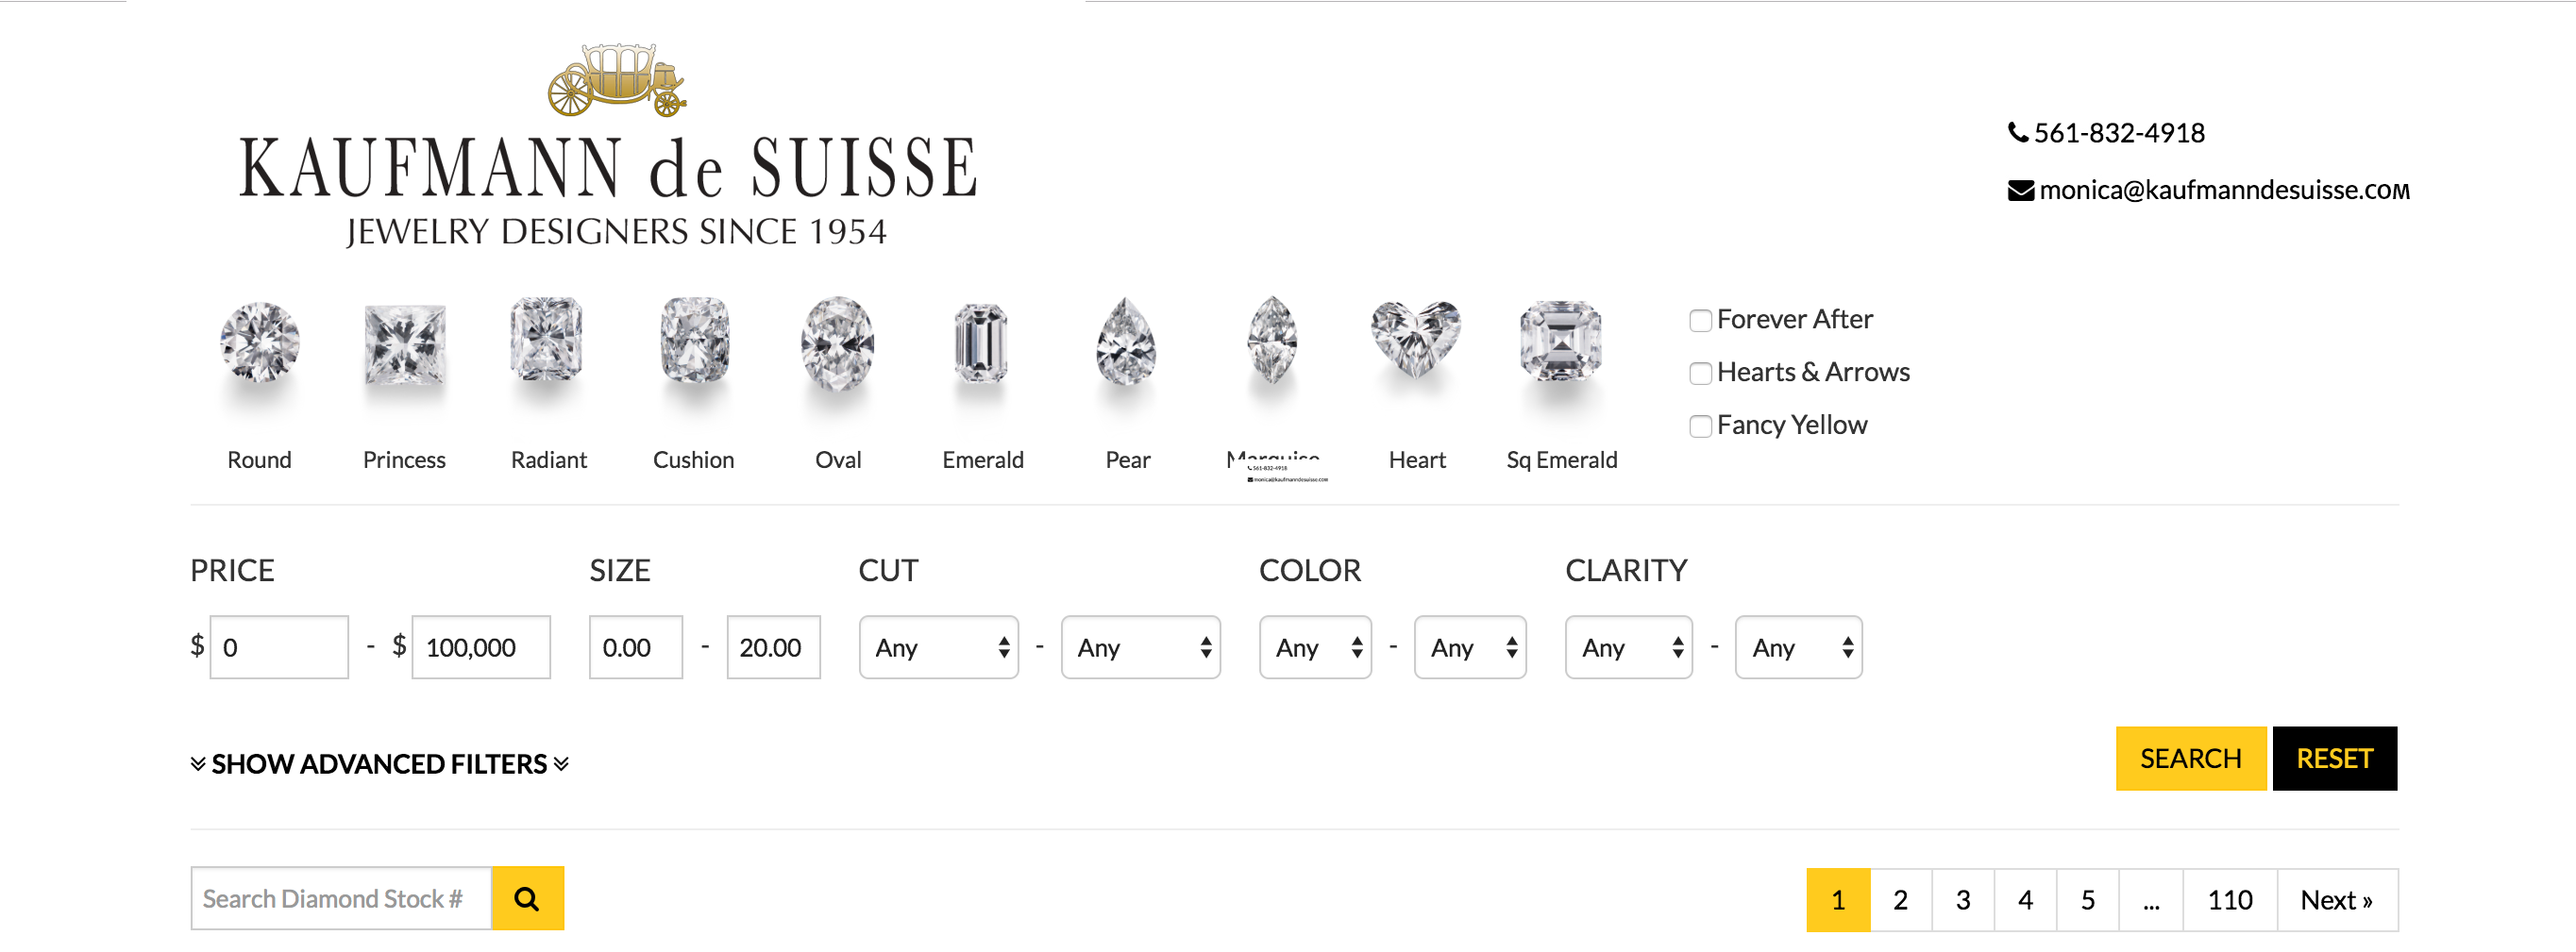 Search for Loose Diamonds at Kaufmann de Suisse